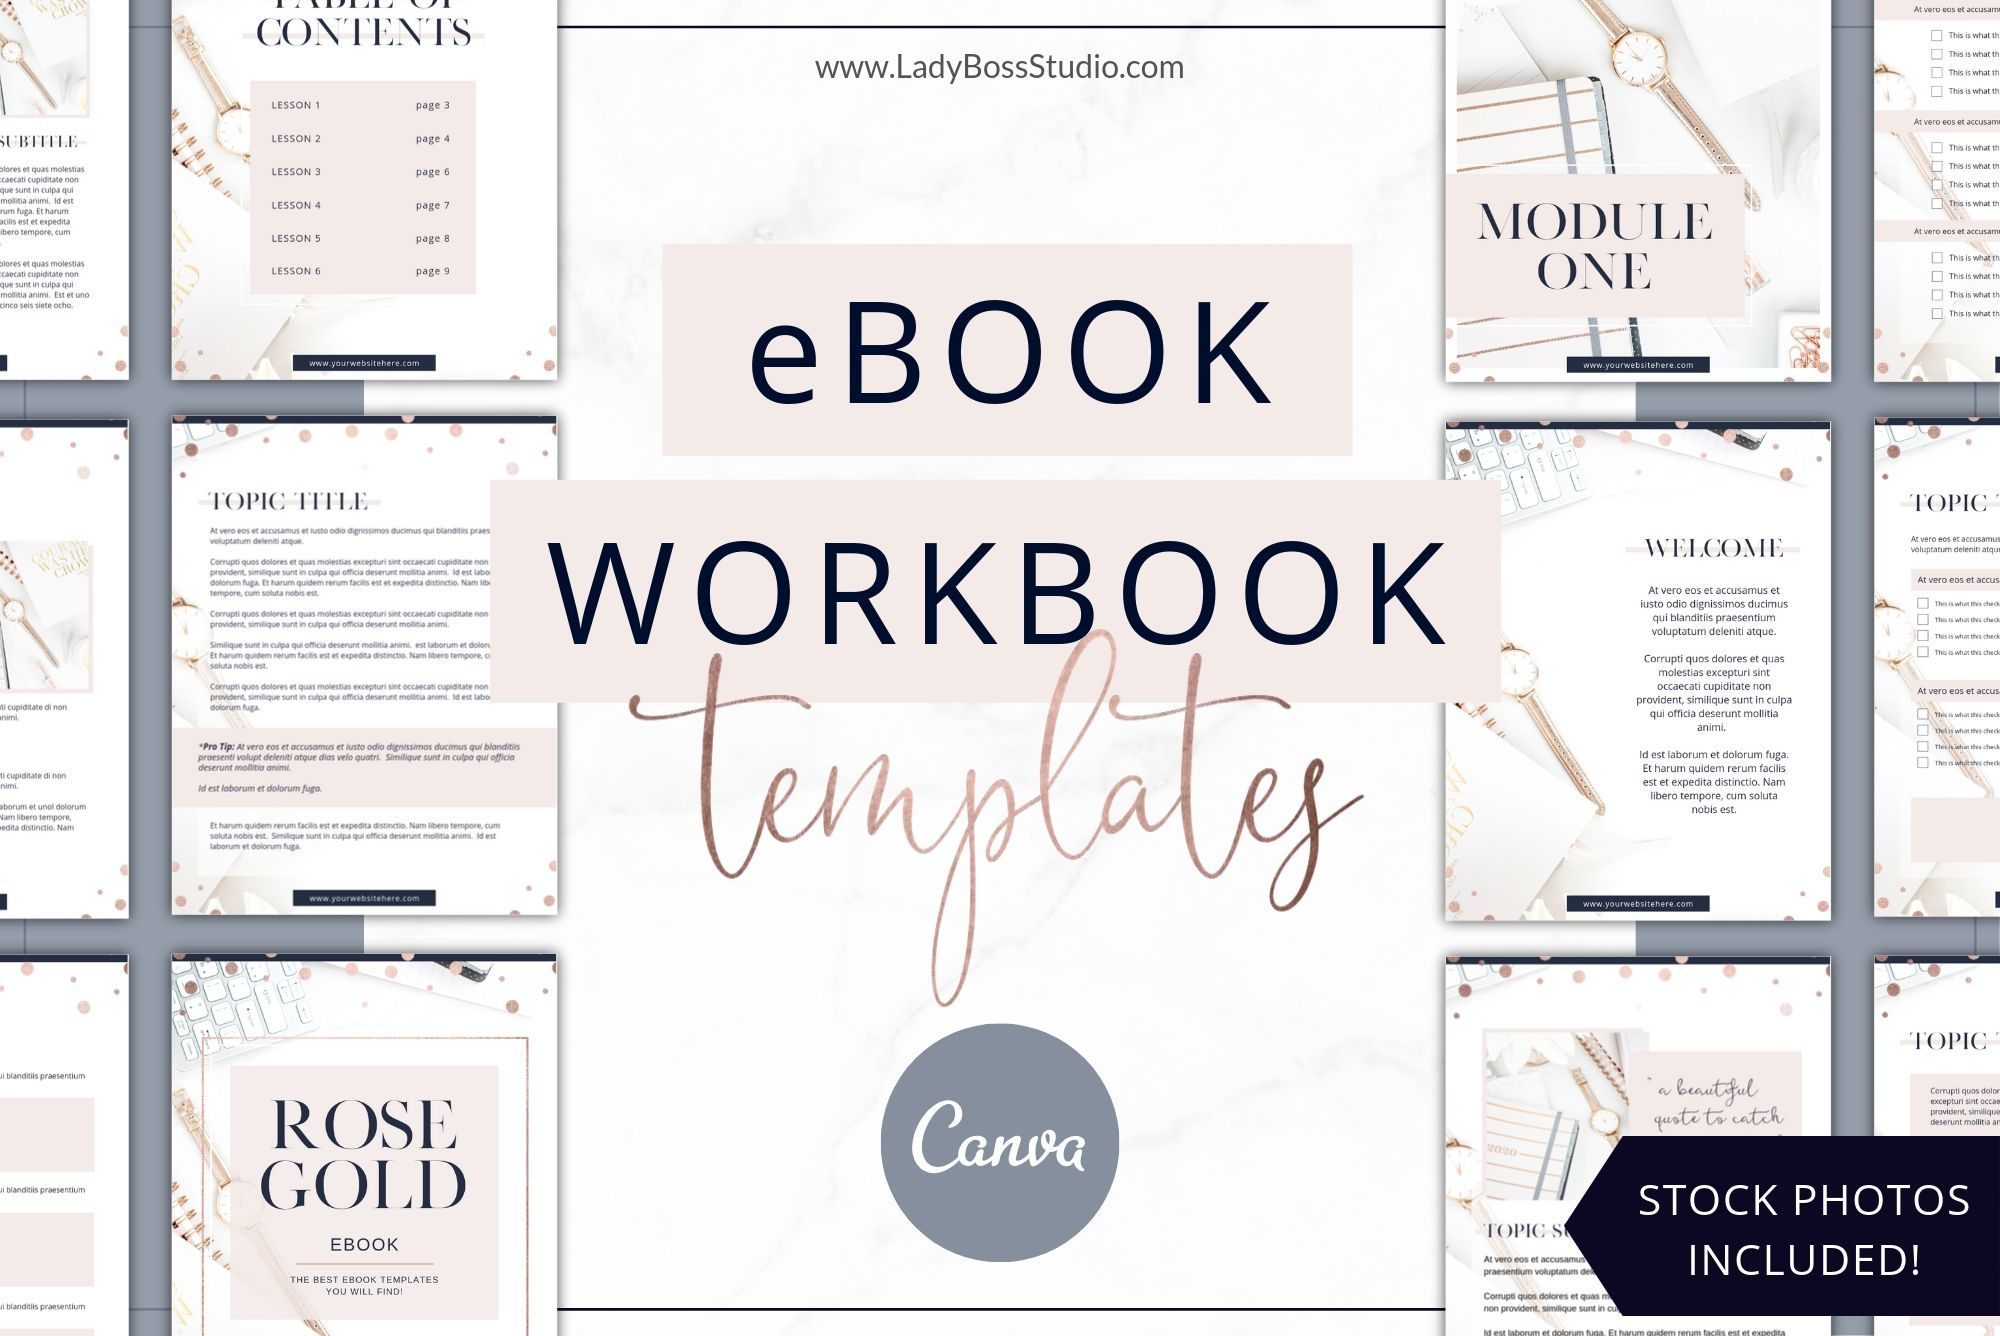 Rose Gold eBook & Workbook Templates Canva in 2020 (With